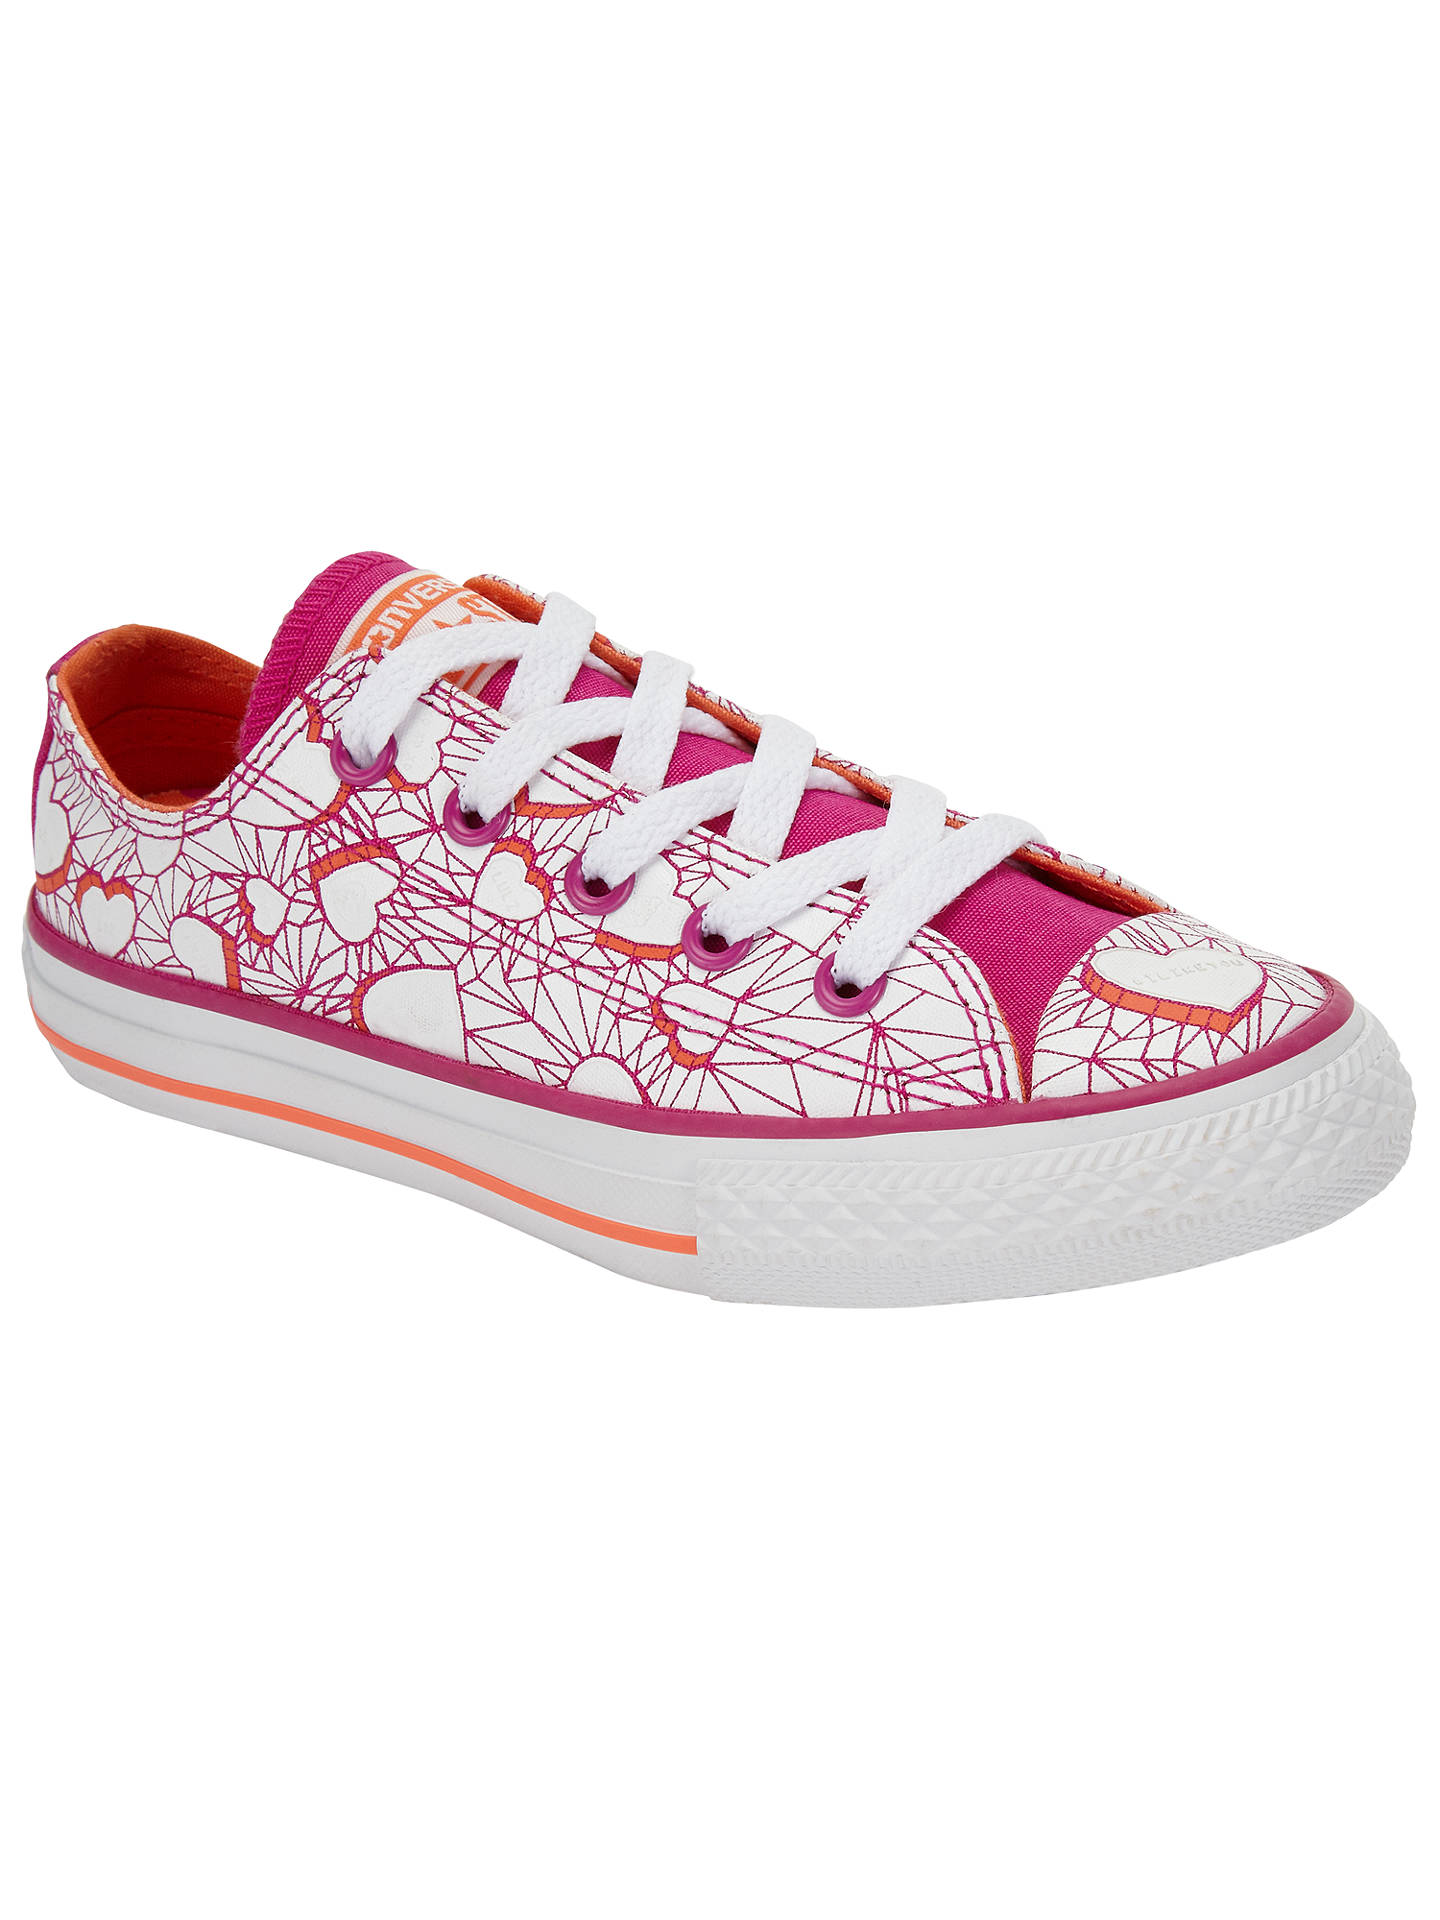 BuyConverse Children s Low Top Valentine Heart Shoes 240ddd726